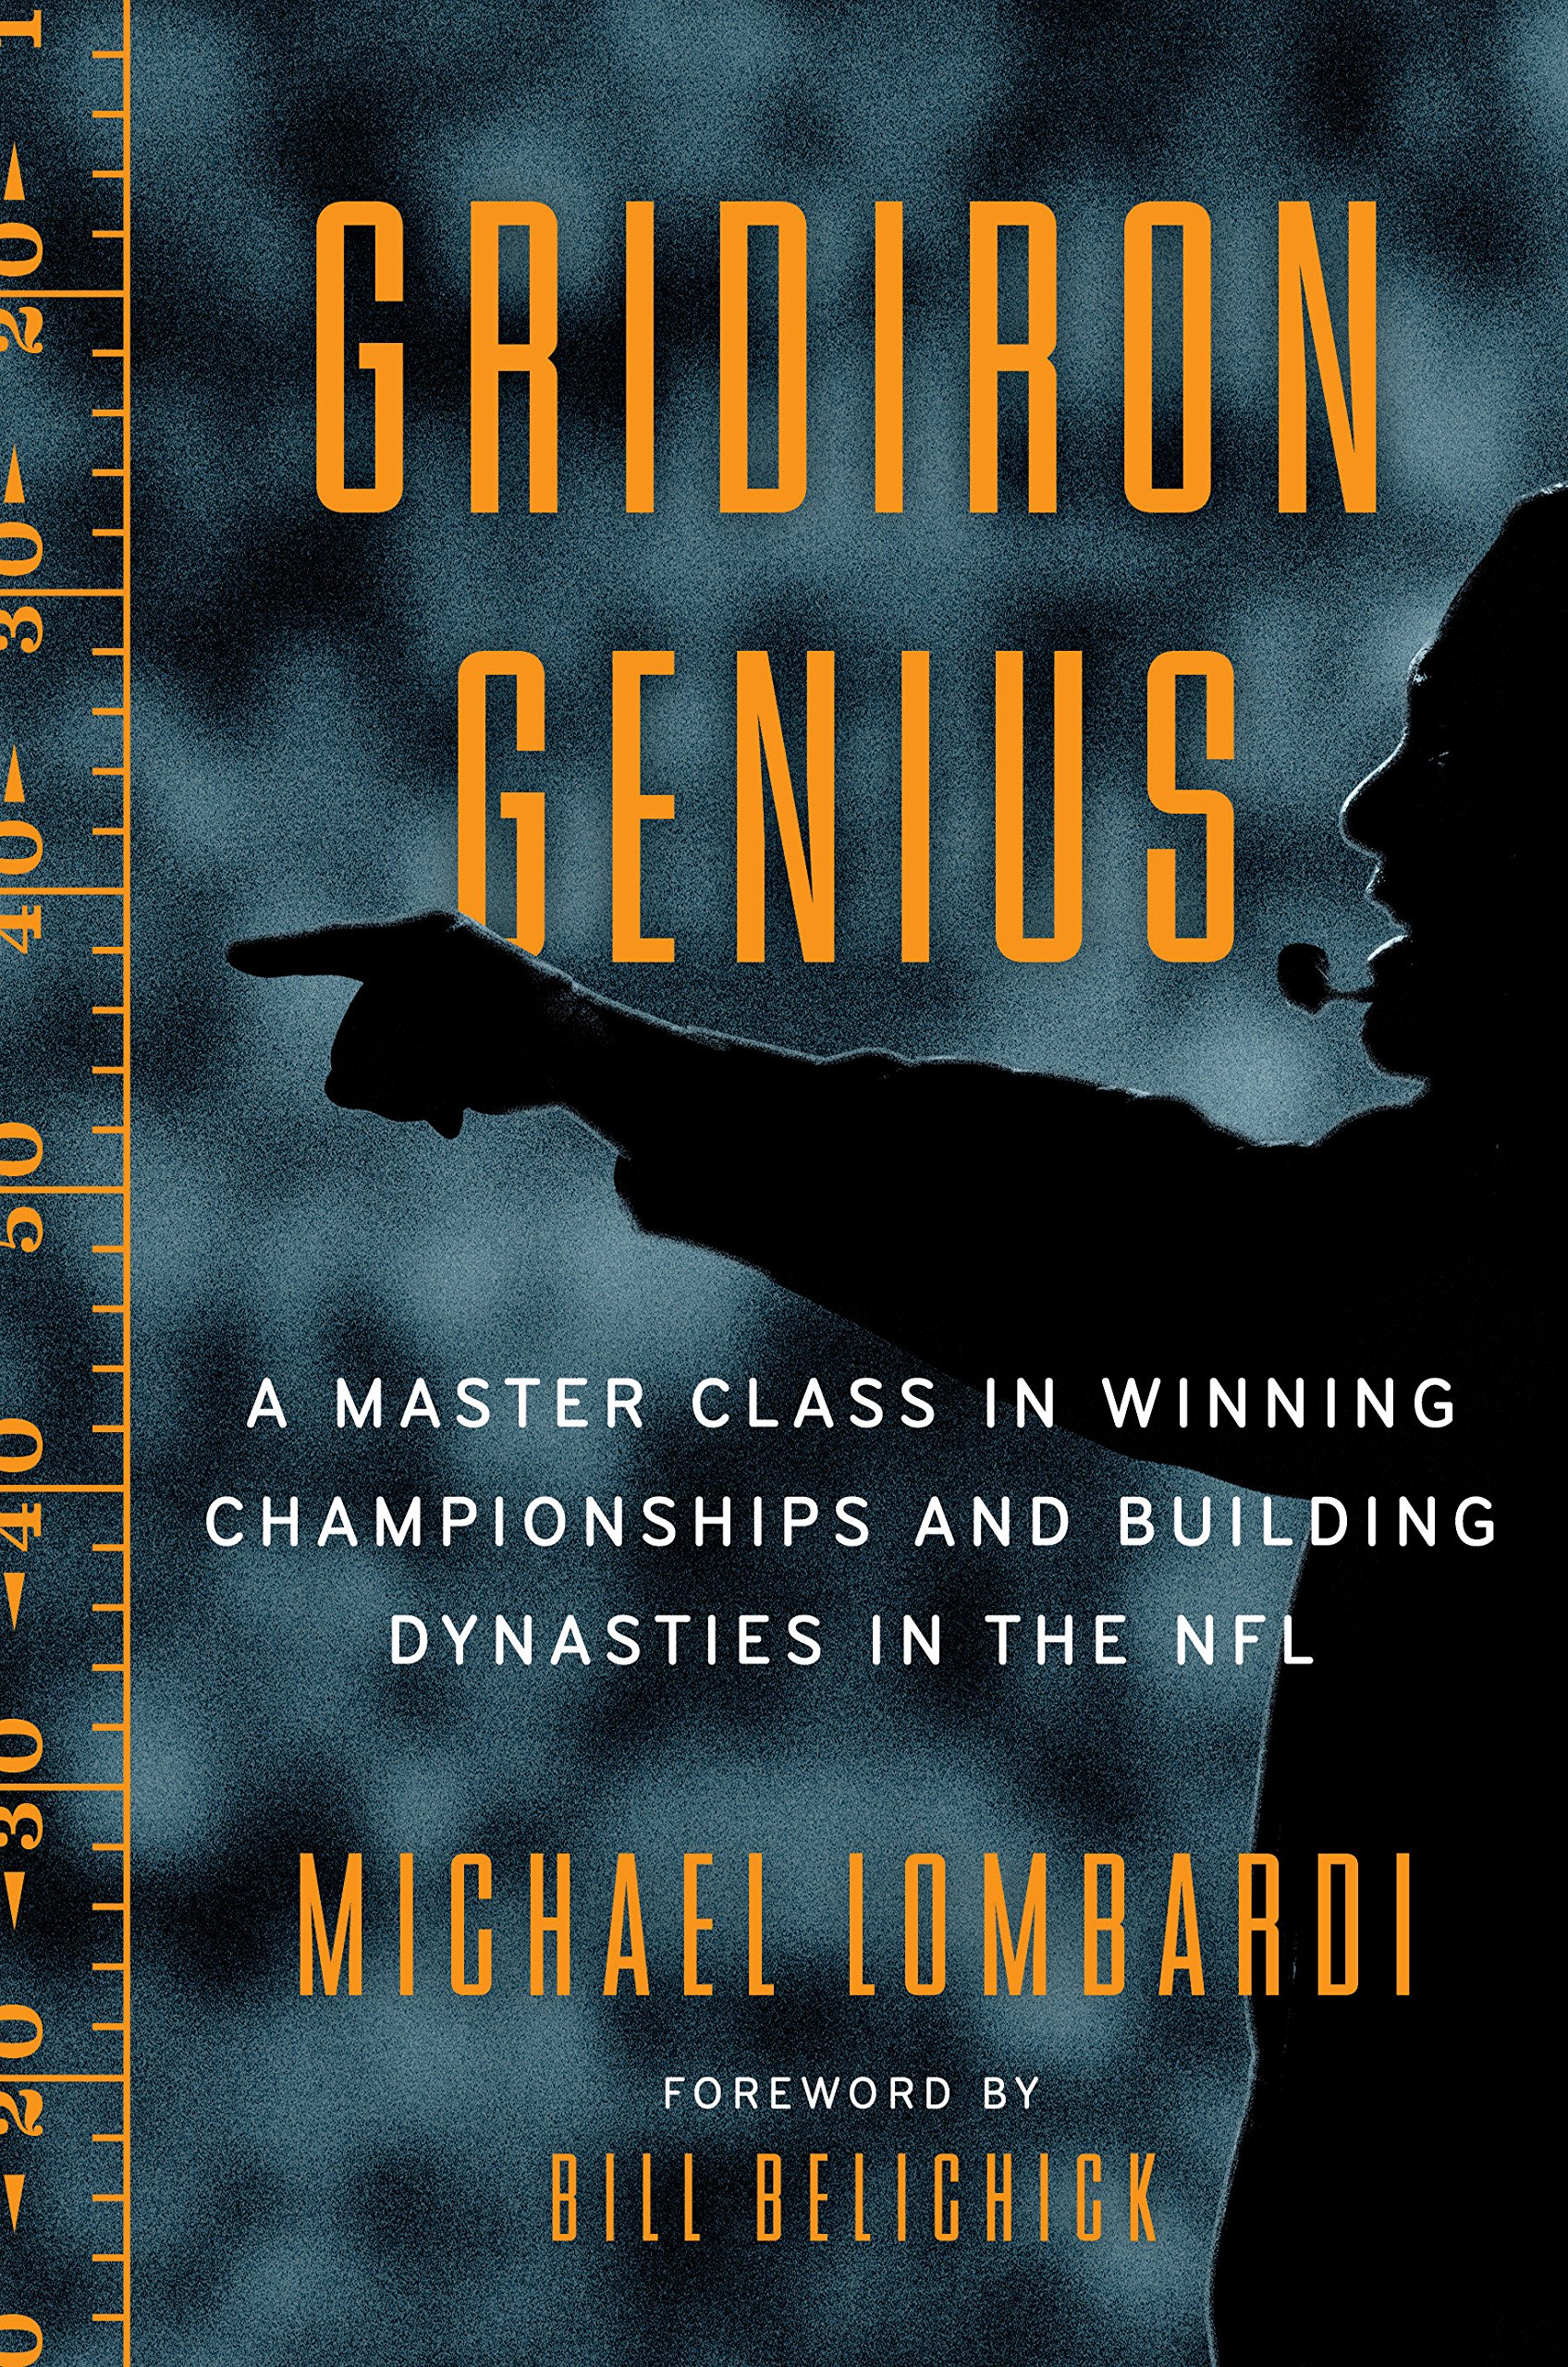 Image result for gridiron genius